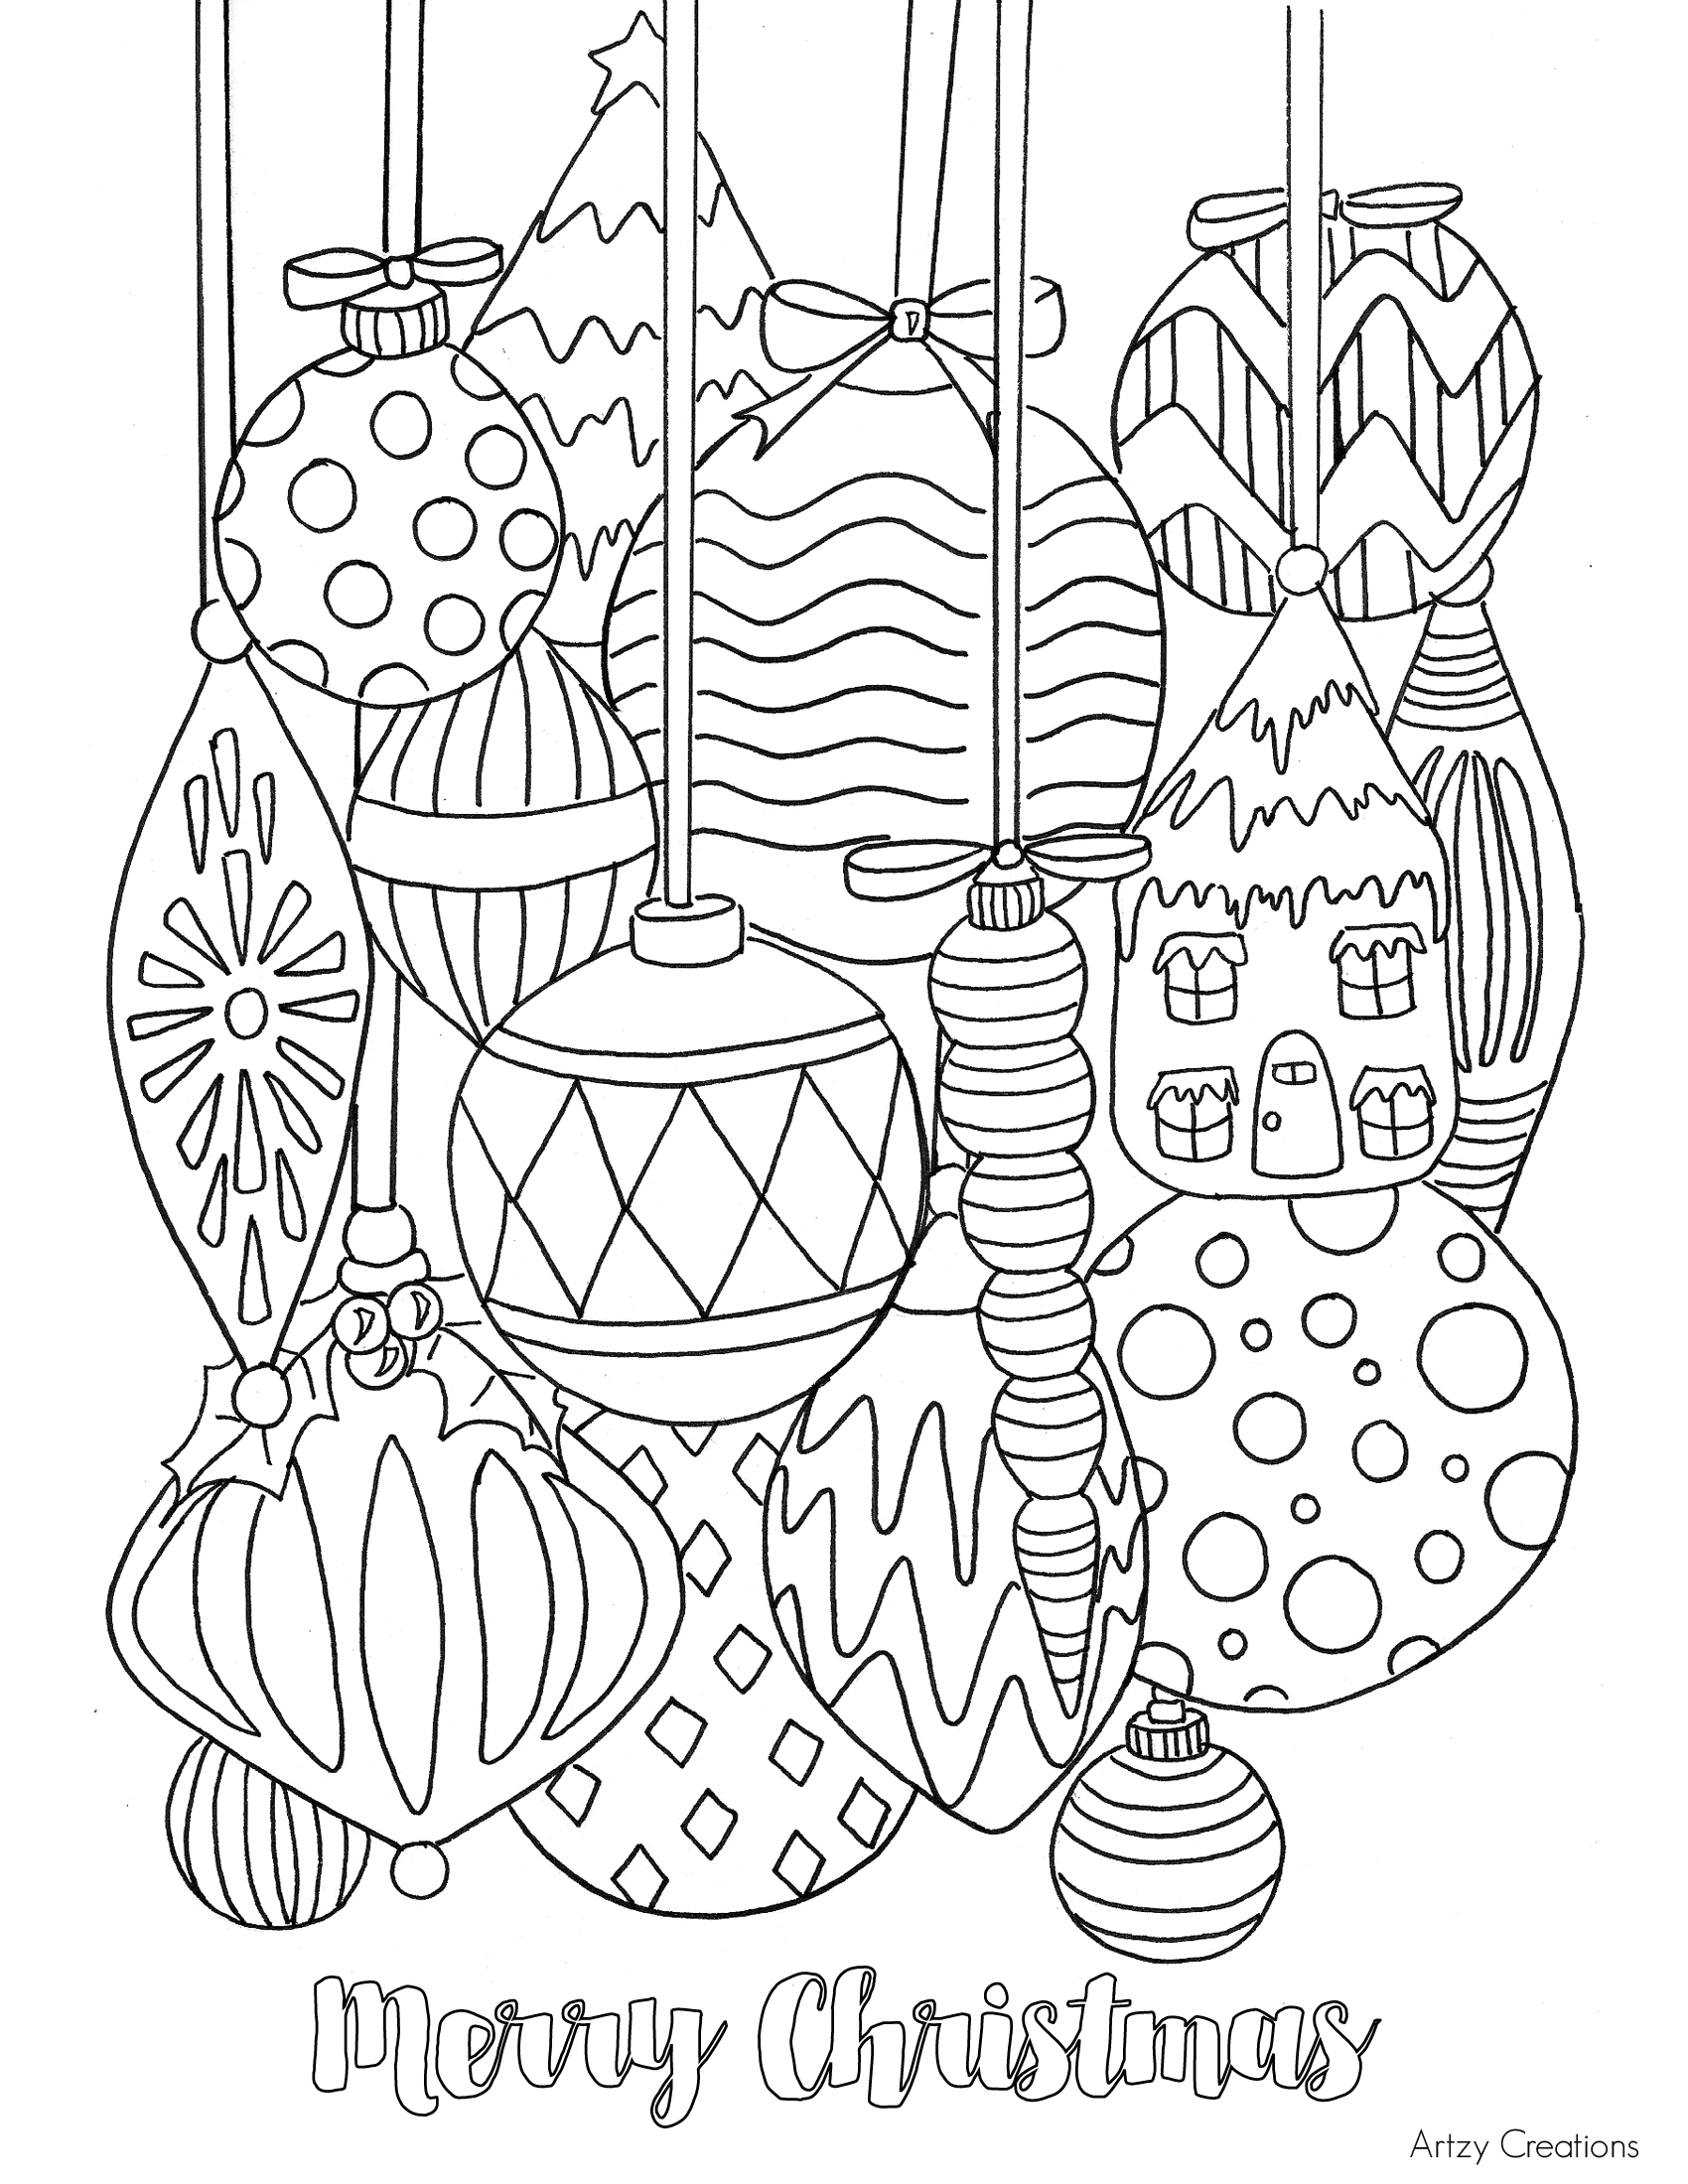 Christmas Ornaments Coloring Pages With Free Ornament Page TGIF This Grandma Is Fun